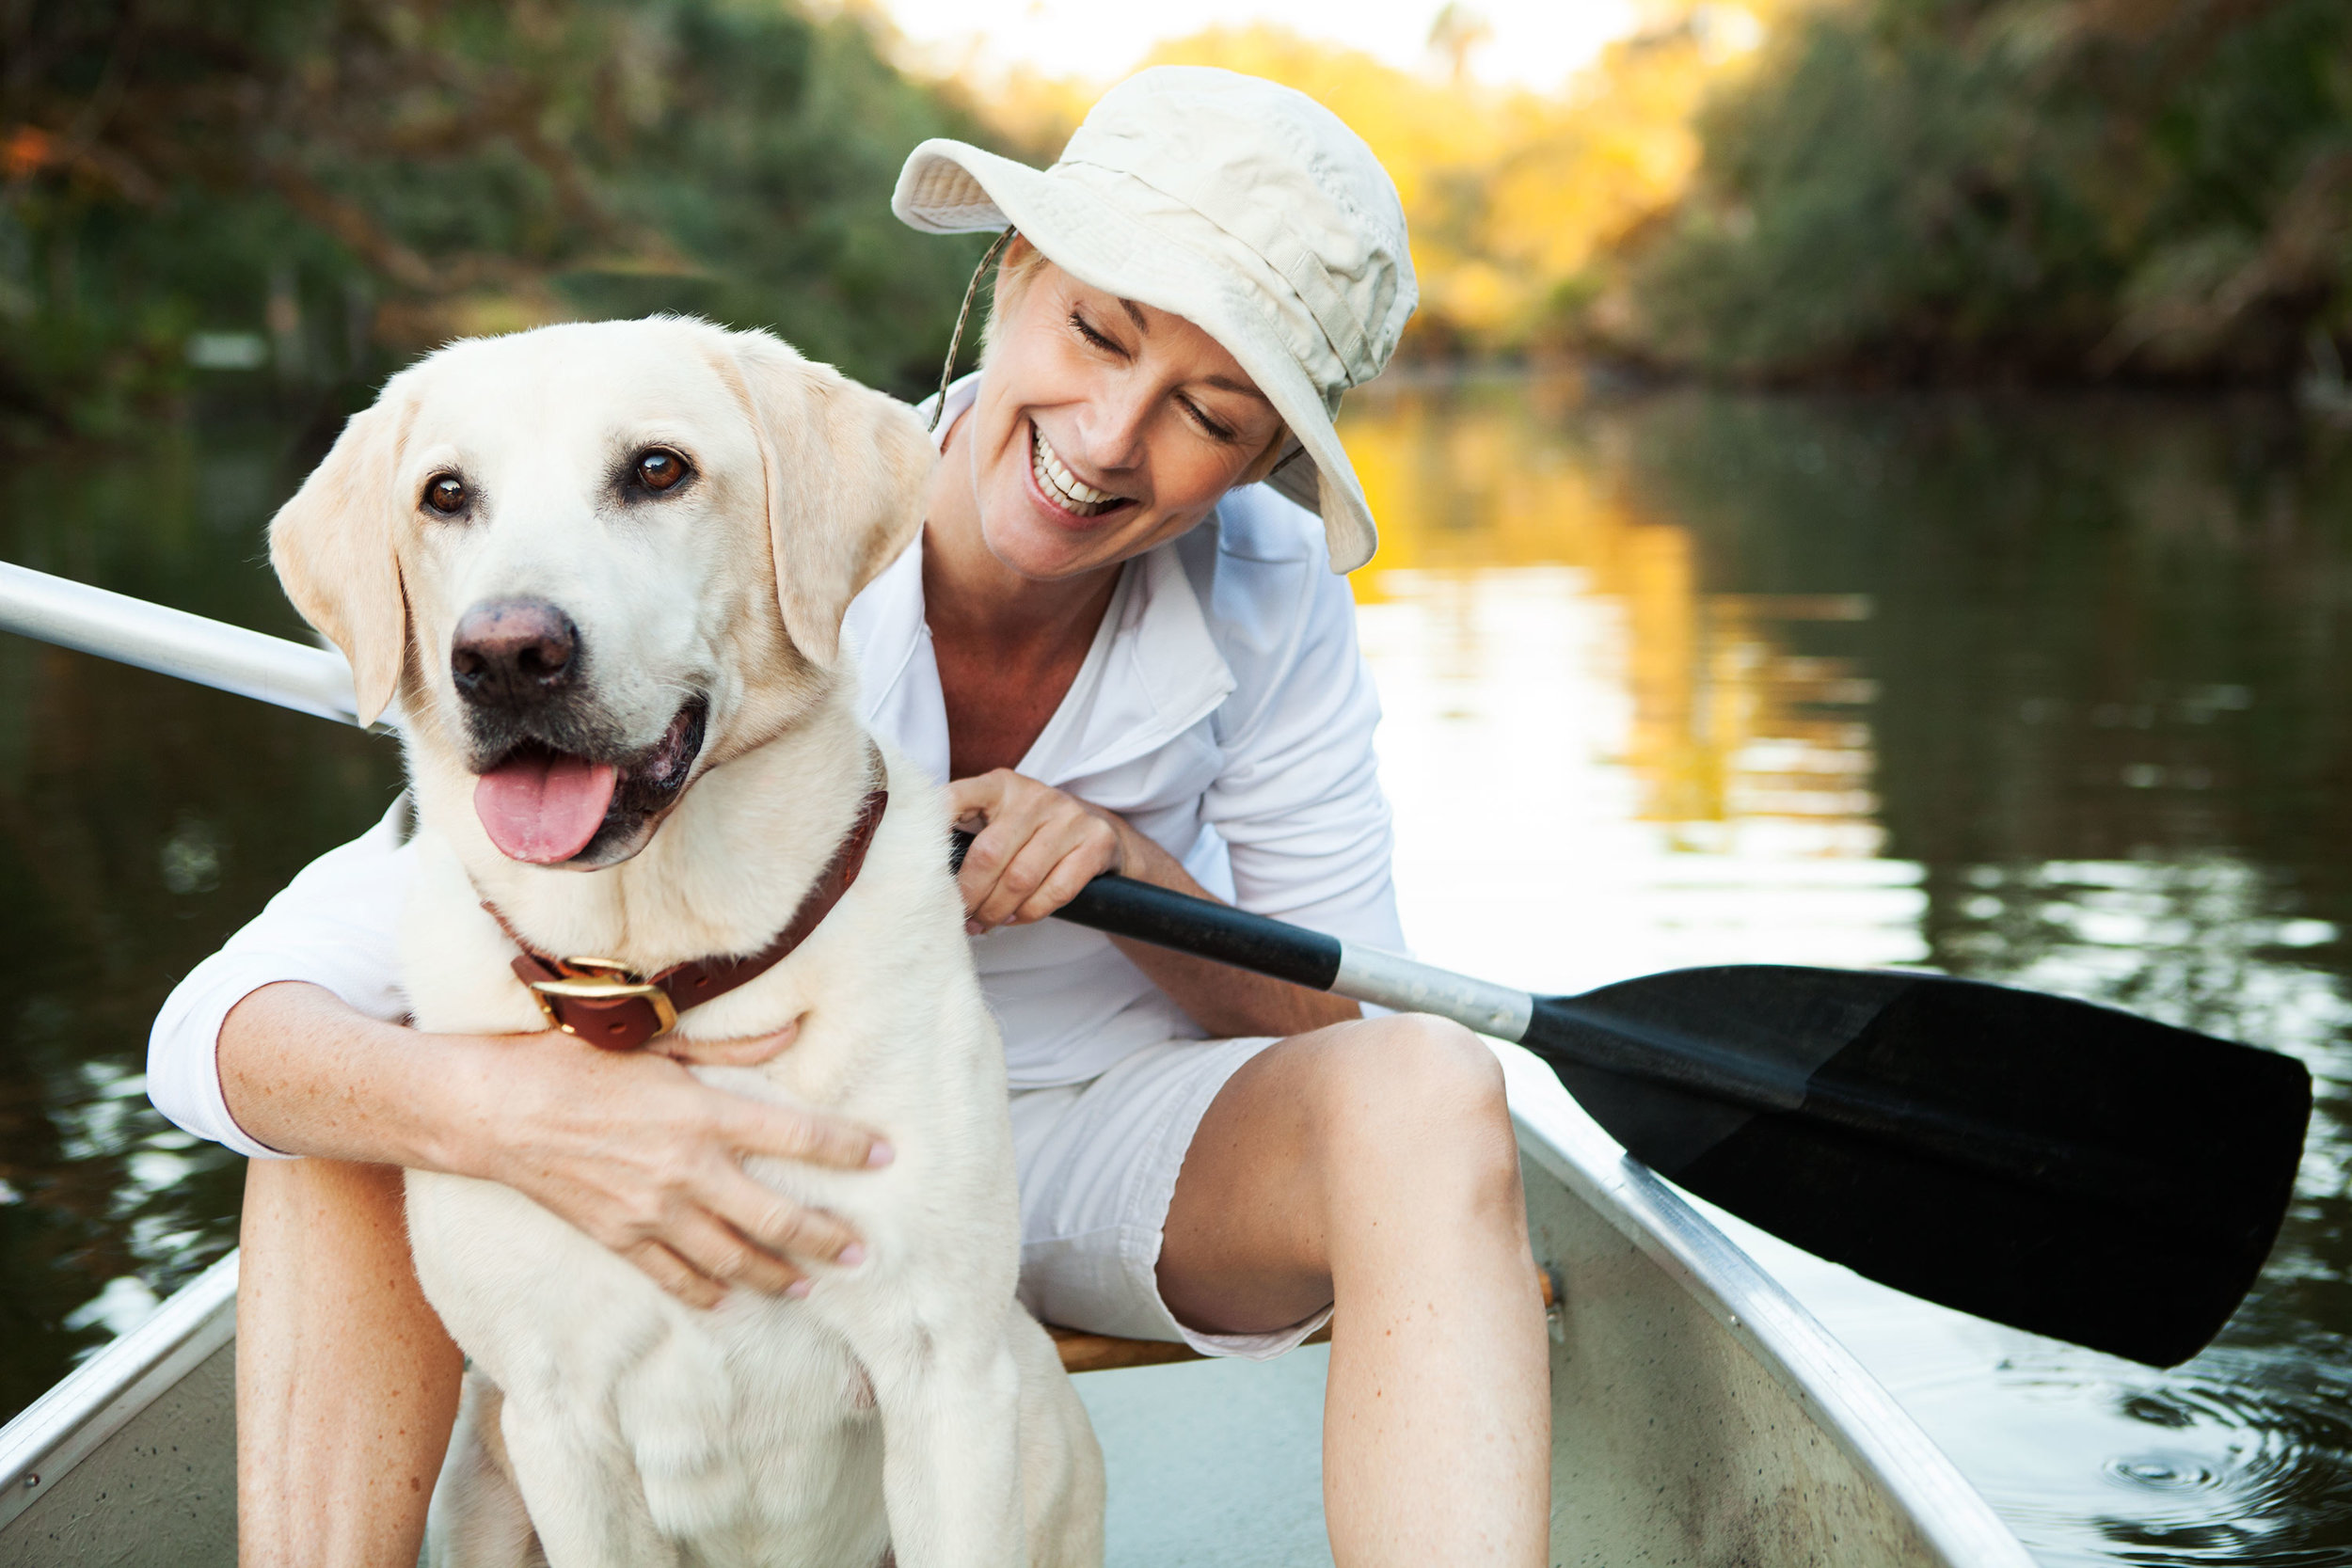 lifestyle_florida_verandah_woman_in_canoe_with_dogIMG_8922retouched_final_a_websize.jpg